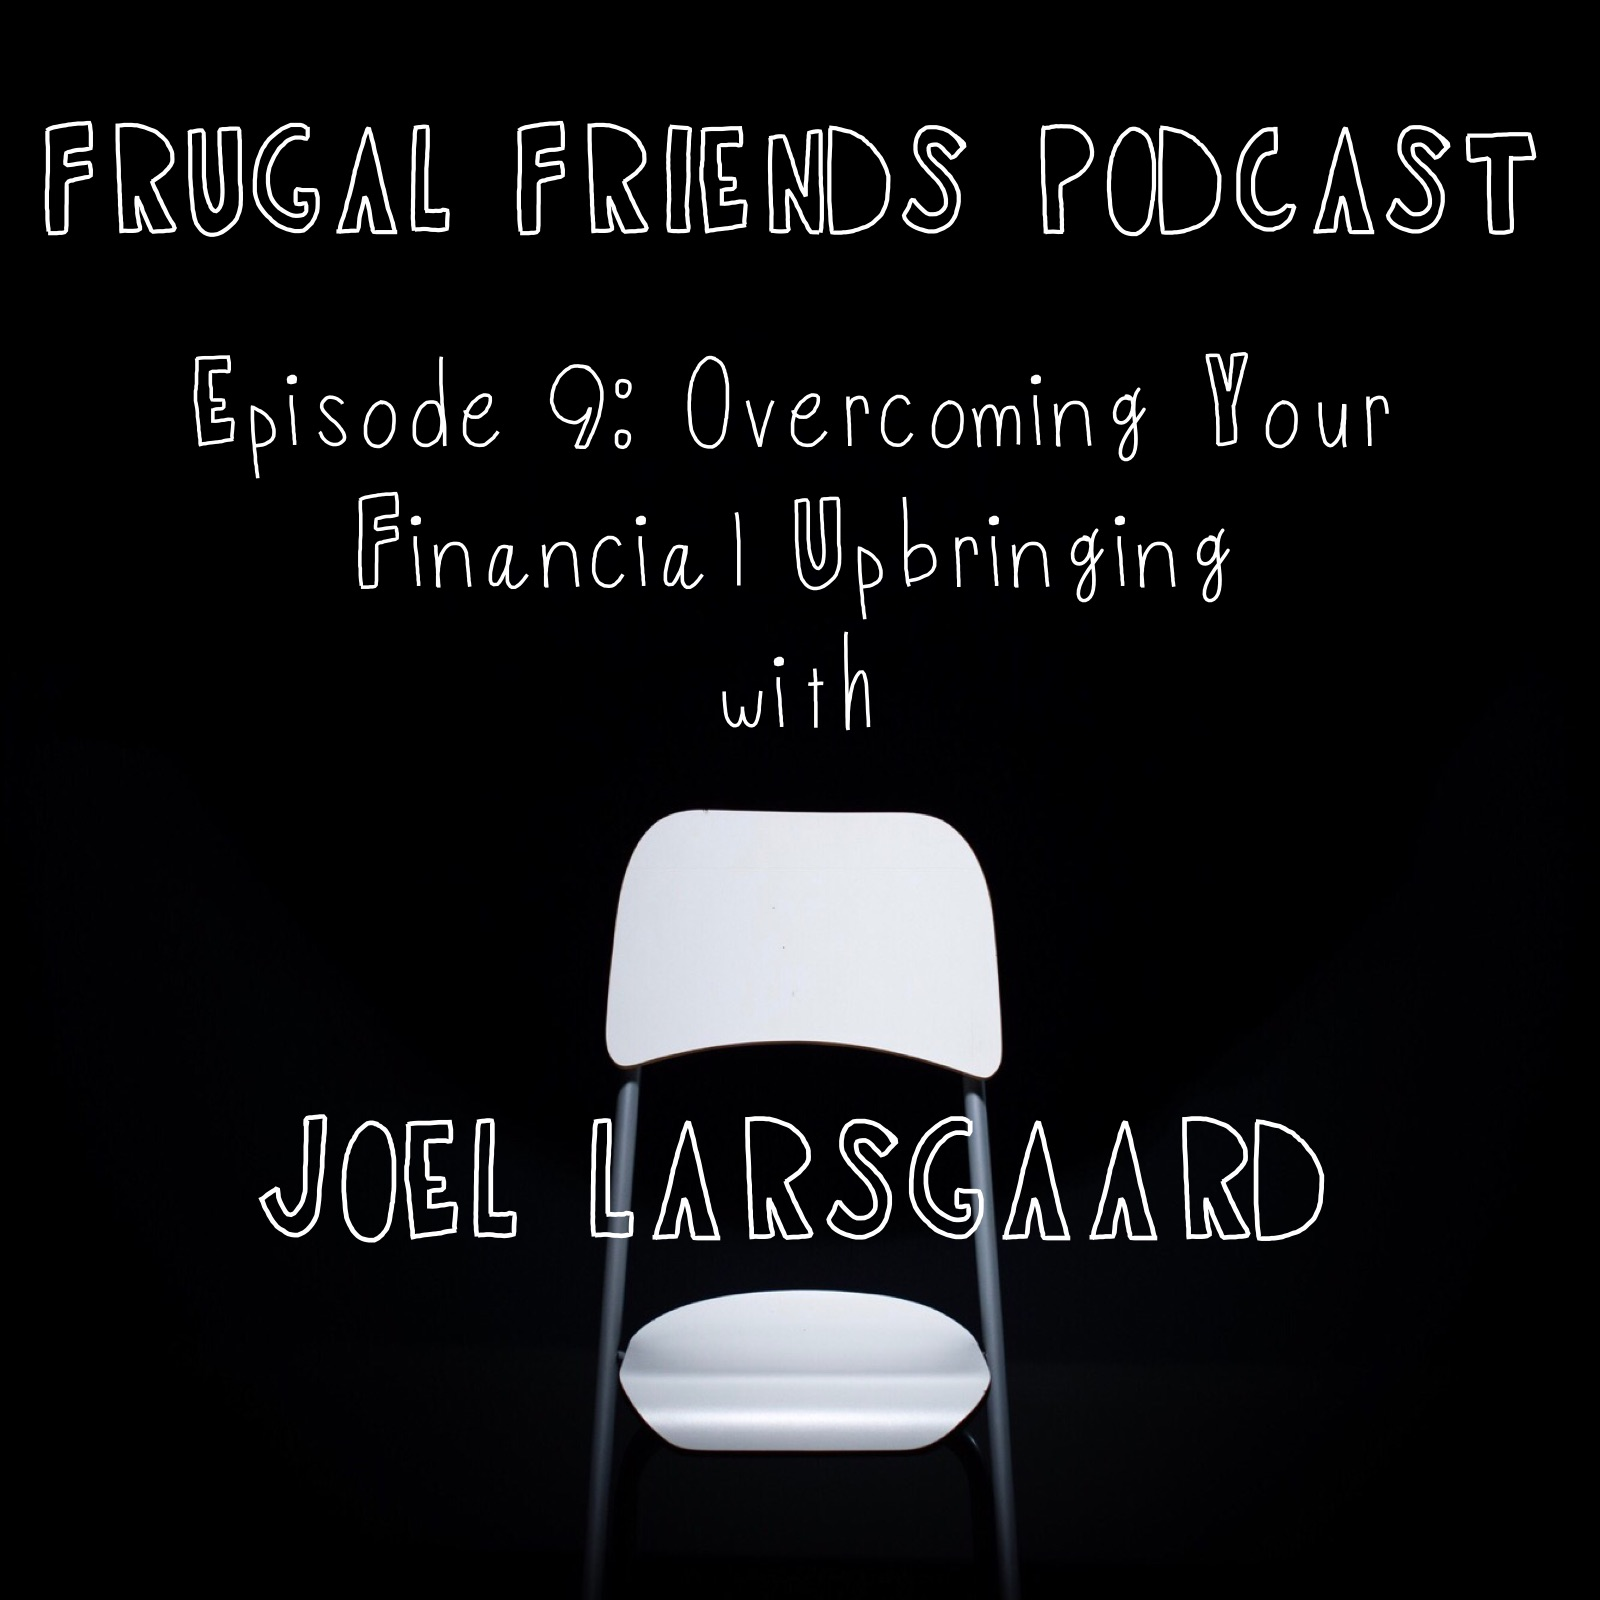 Episode 9: Overcoming Your Financial Upcoming with Joel Larsgaard